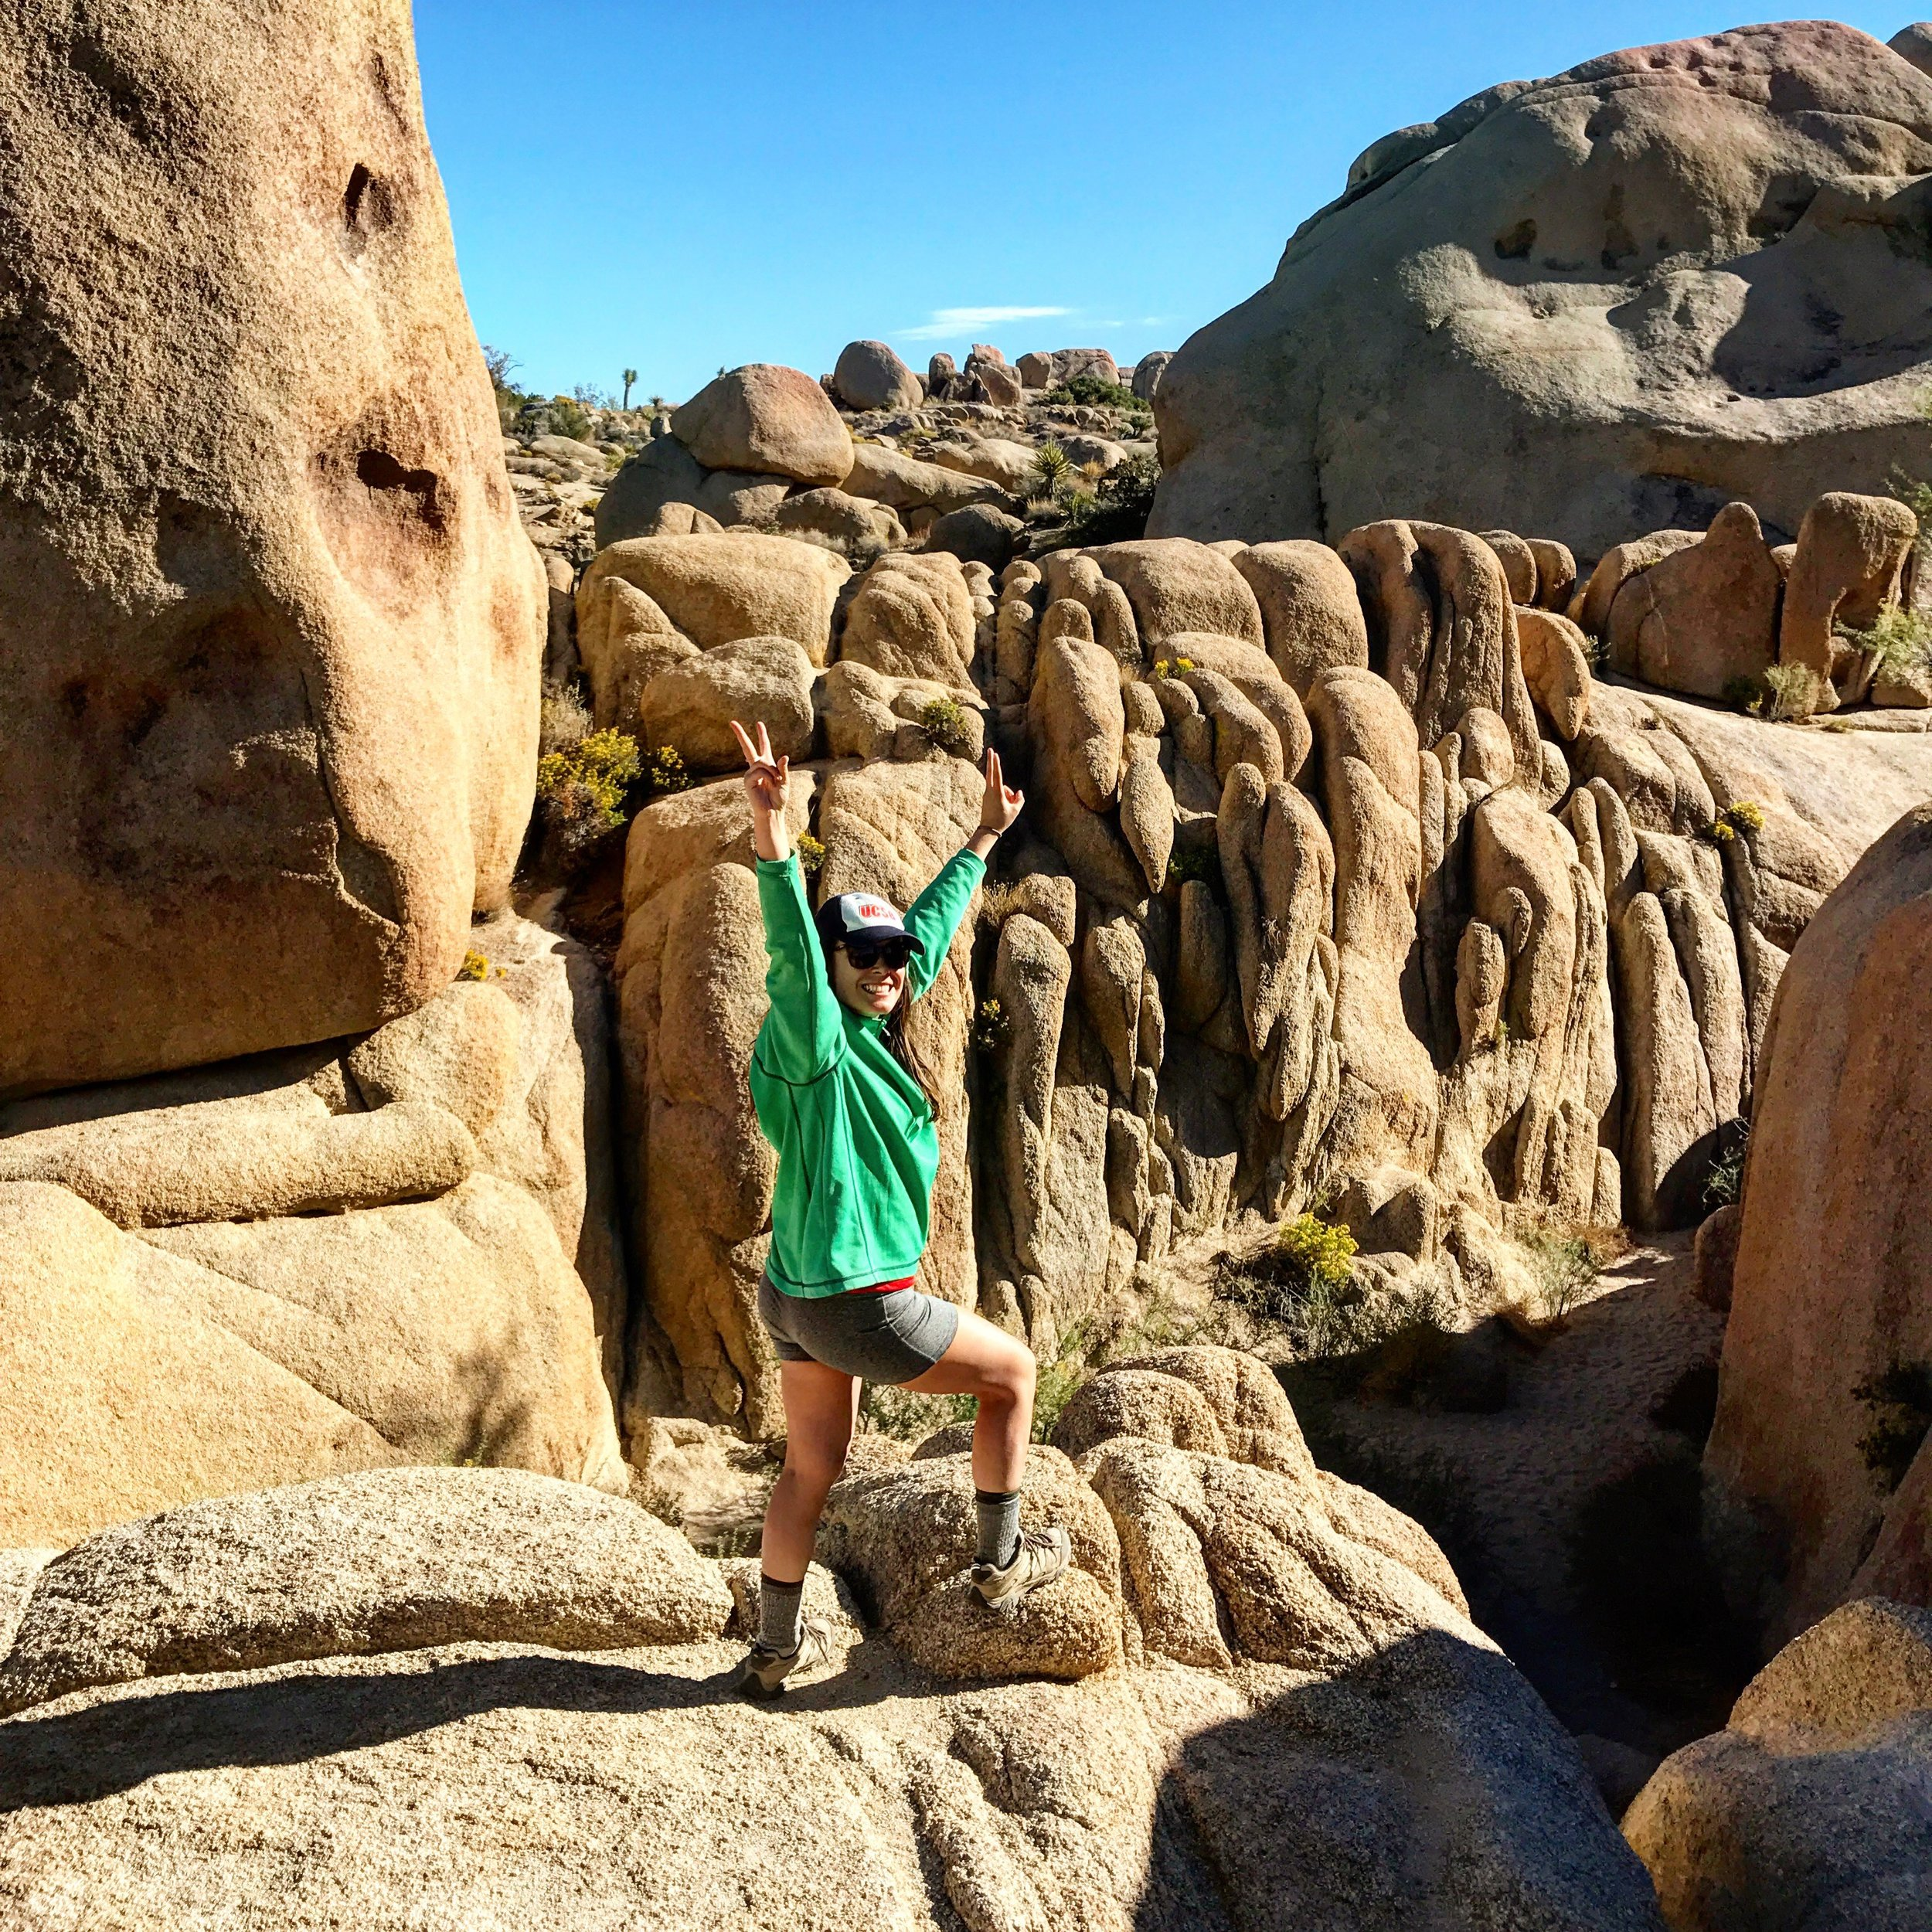 Nature rocks at Joshua Tree. Base layer: The North Face Dri-Fit shorts, Angels Baseball Dri-Fit T-shirt, Pullover fleece from Costco (trying to save a dollar). Don't forget your sock liners and wool socks (even in warm weather).